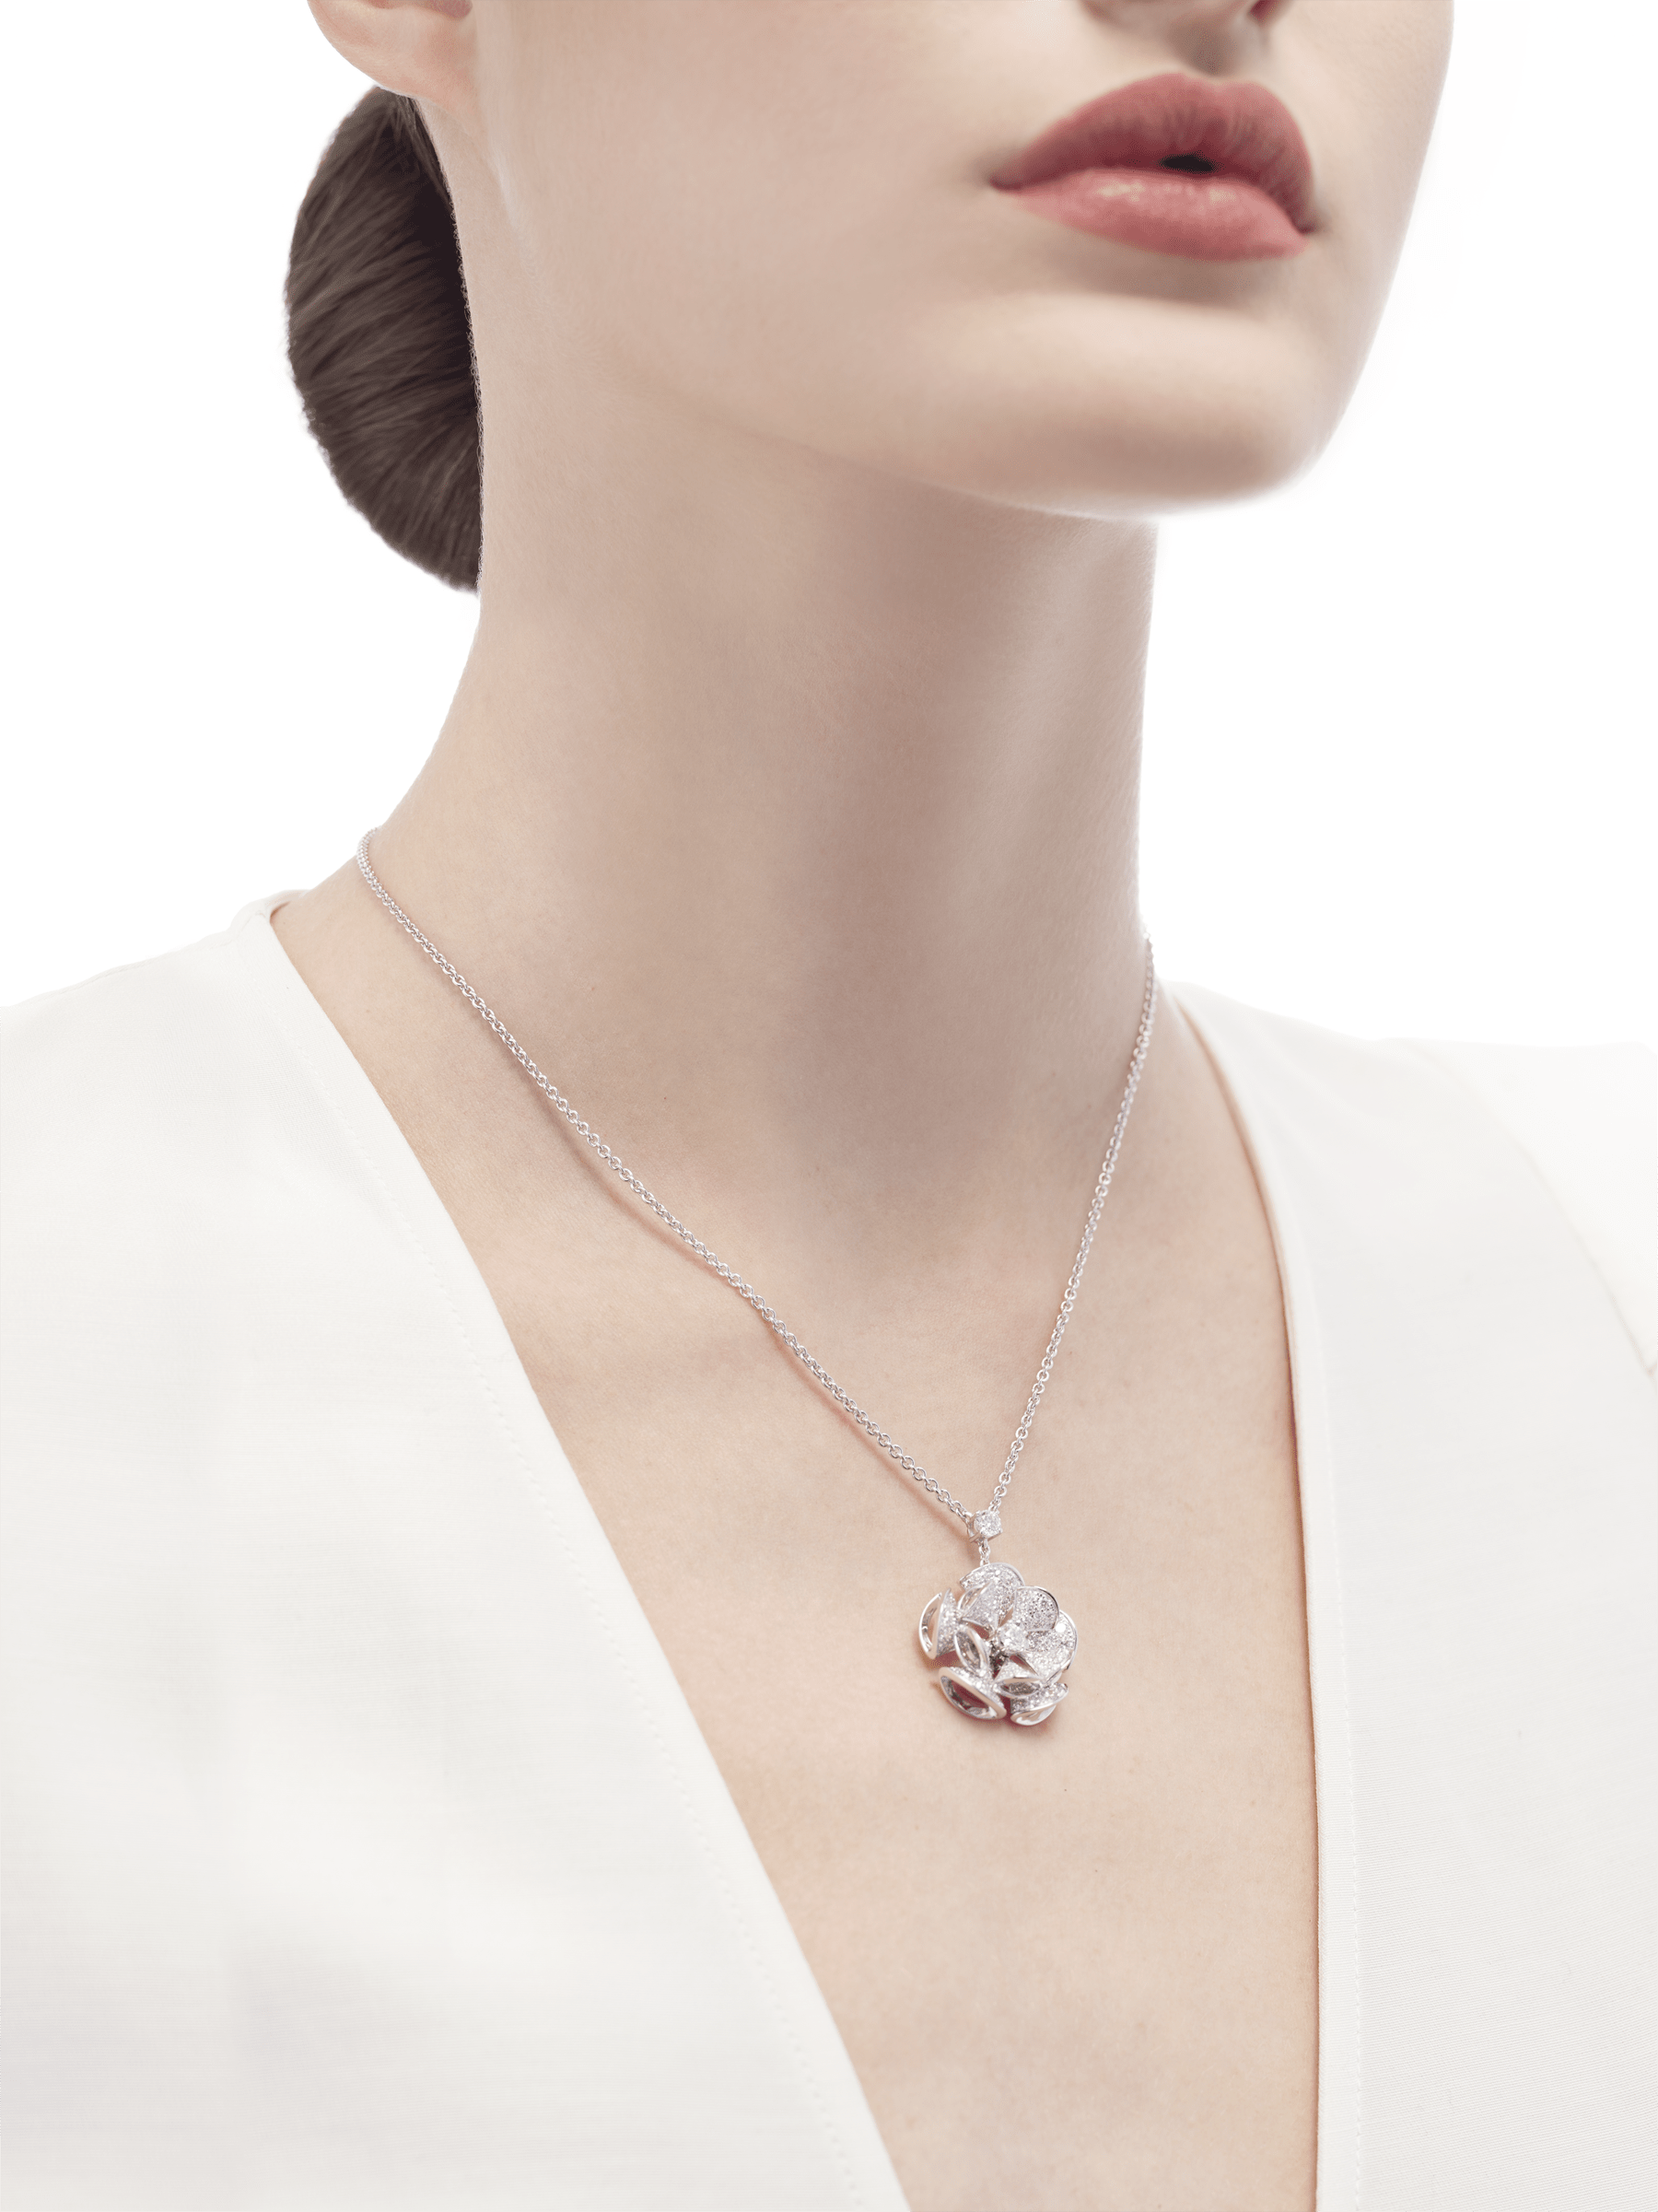 DIVAS' DREAM necklace in 18 kt white gold with a diamond on the chain and 18 kt white gold pendant set with central diamond and full pavé diamonds. 350854 image 4